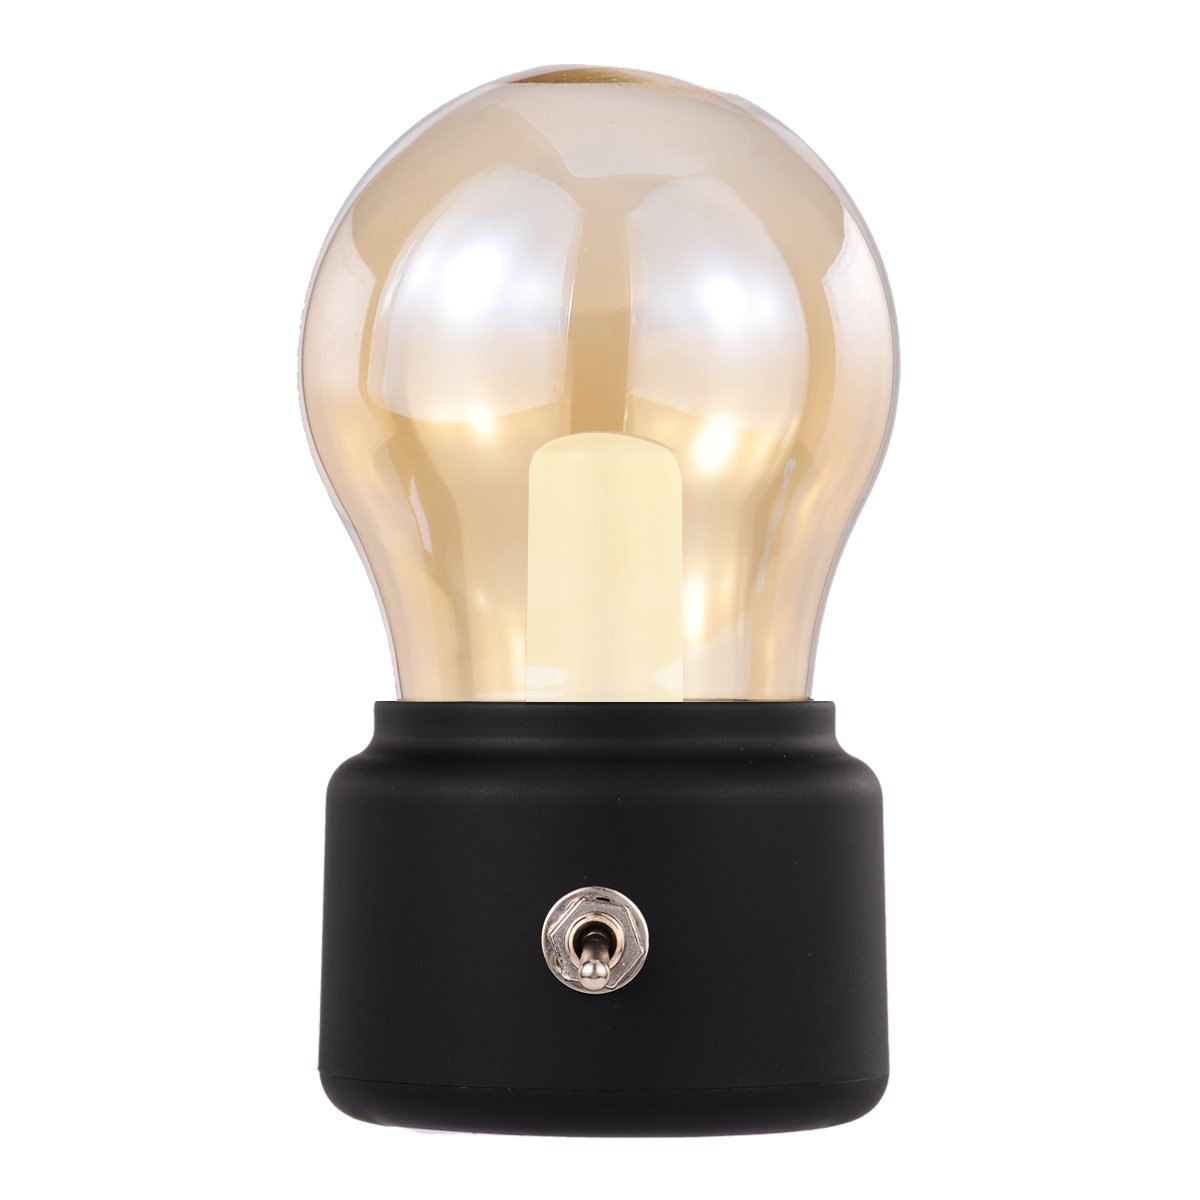 Rechargeable LED Night Light, Black, Retro Style, Bubl Lamps for Bedrooms, Baby, Candlelight Dinner, Camping, Party, Emergency Lighting, 500mAh Battery Inside LED Night Light for Coffee Shop, Mini Bar